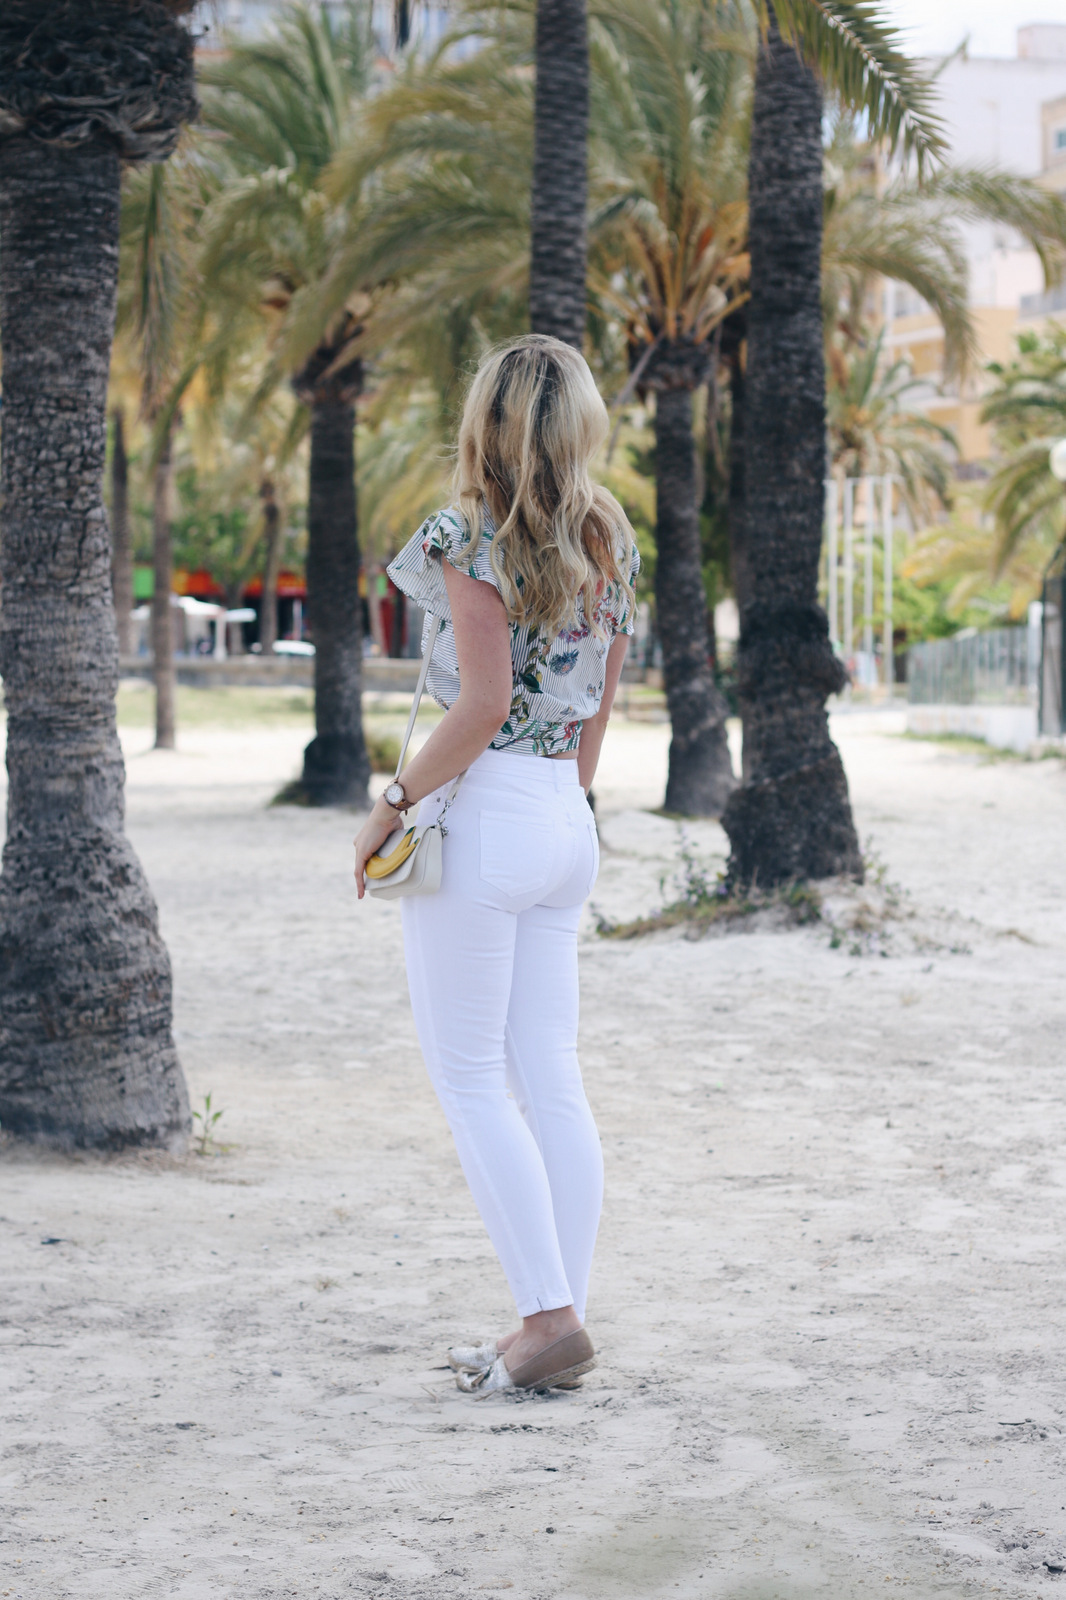 mrsbrightside-rosavivi-weiße-jeans-skinny-zara-top-floral-jungle-tropical-rayban-espadrilles-outfit-blogger-look-mallorca-palma4